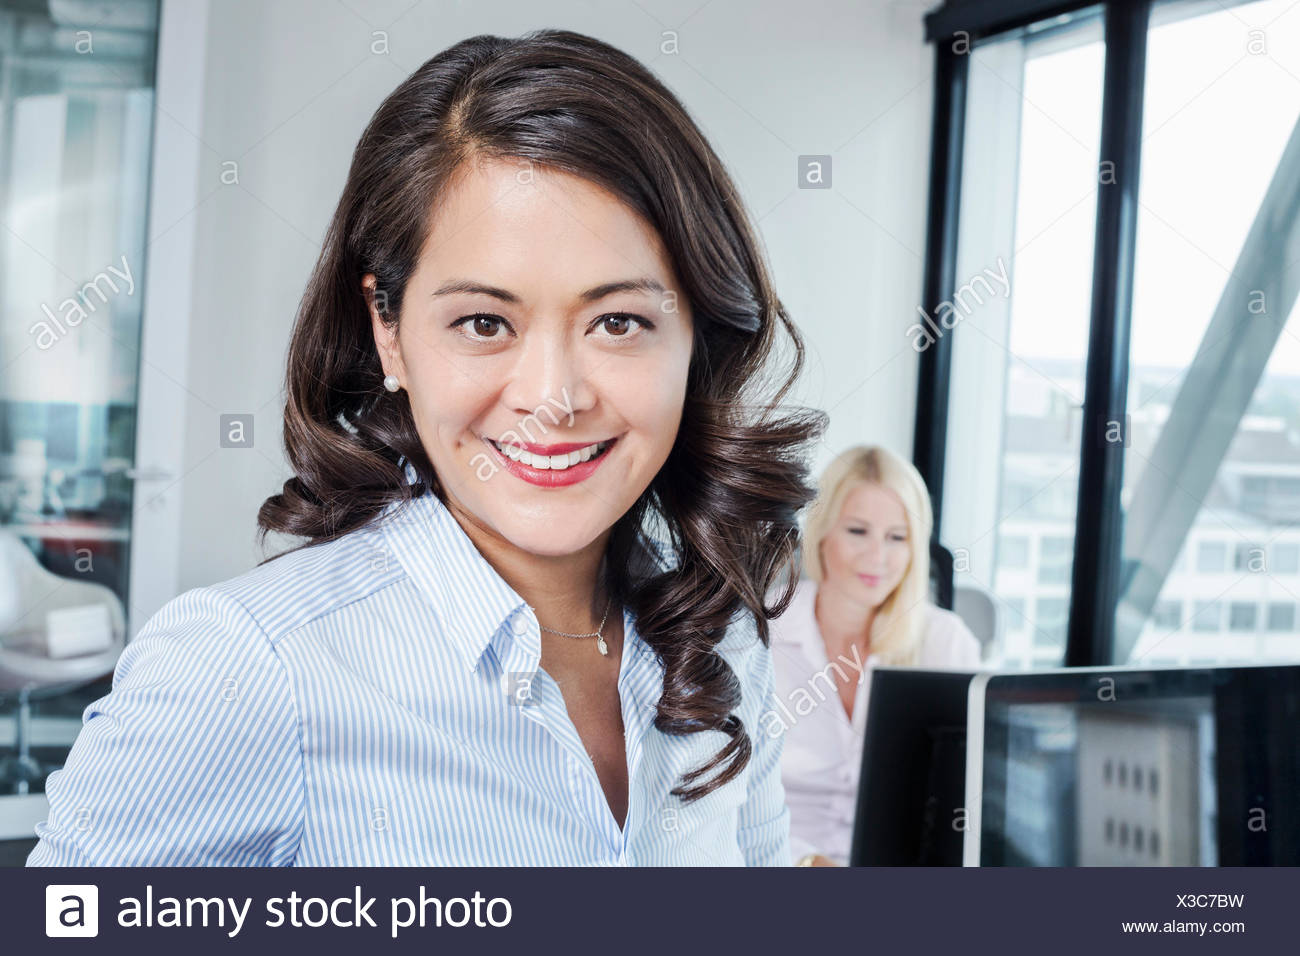 Mature woman in office, portrait Stock Photo